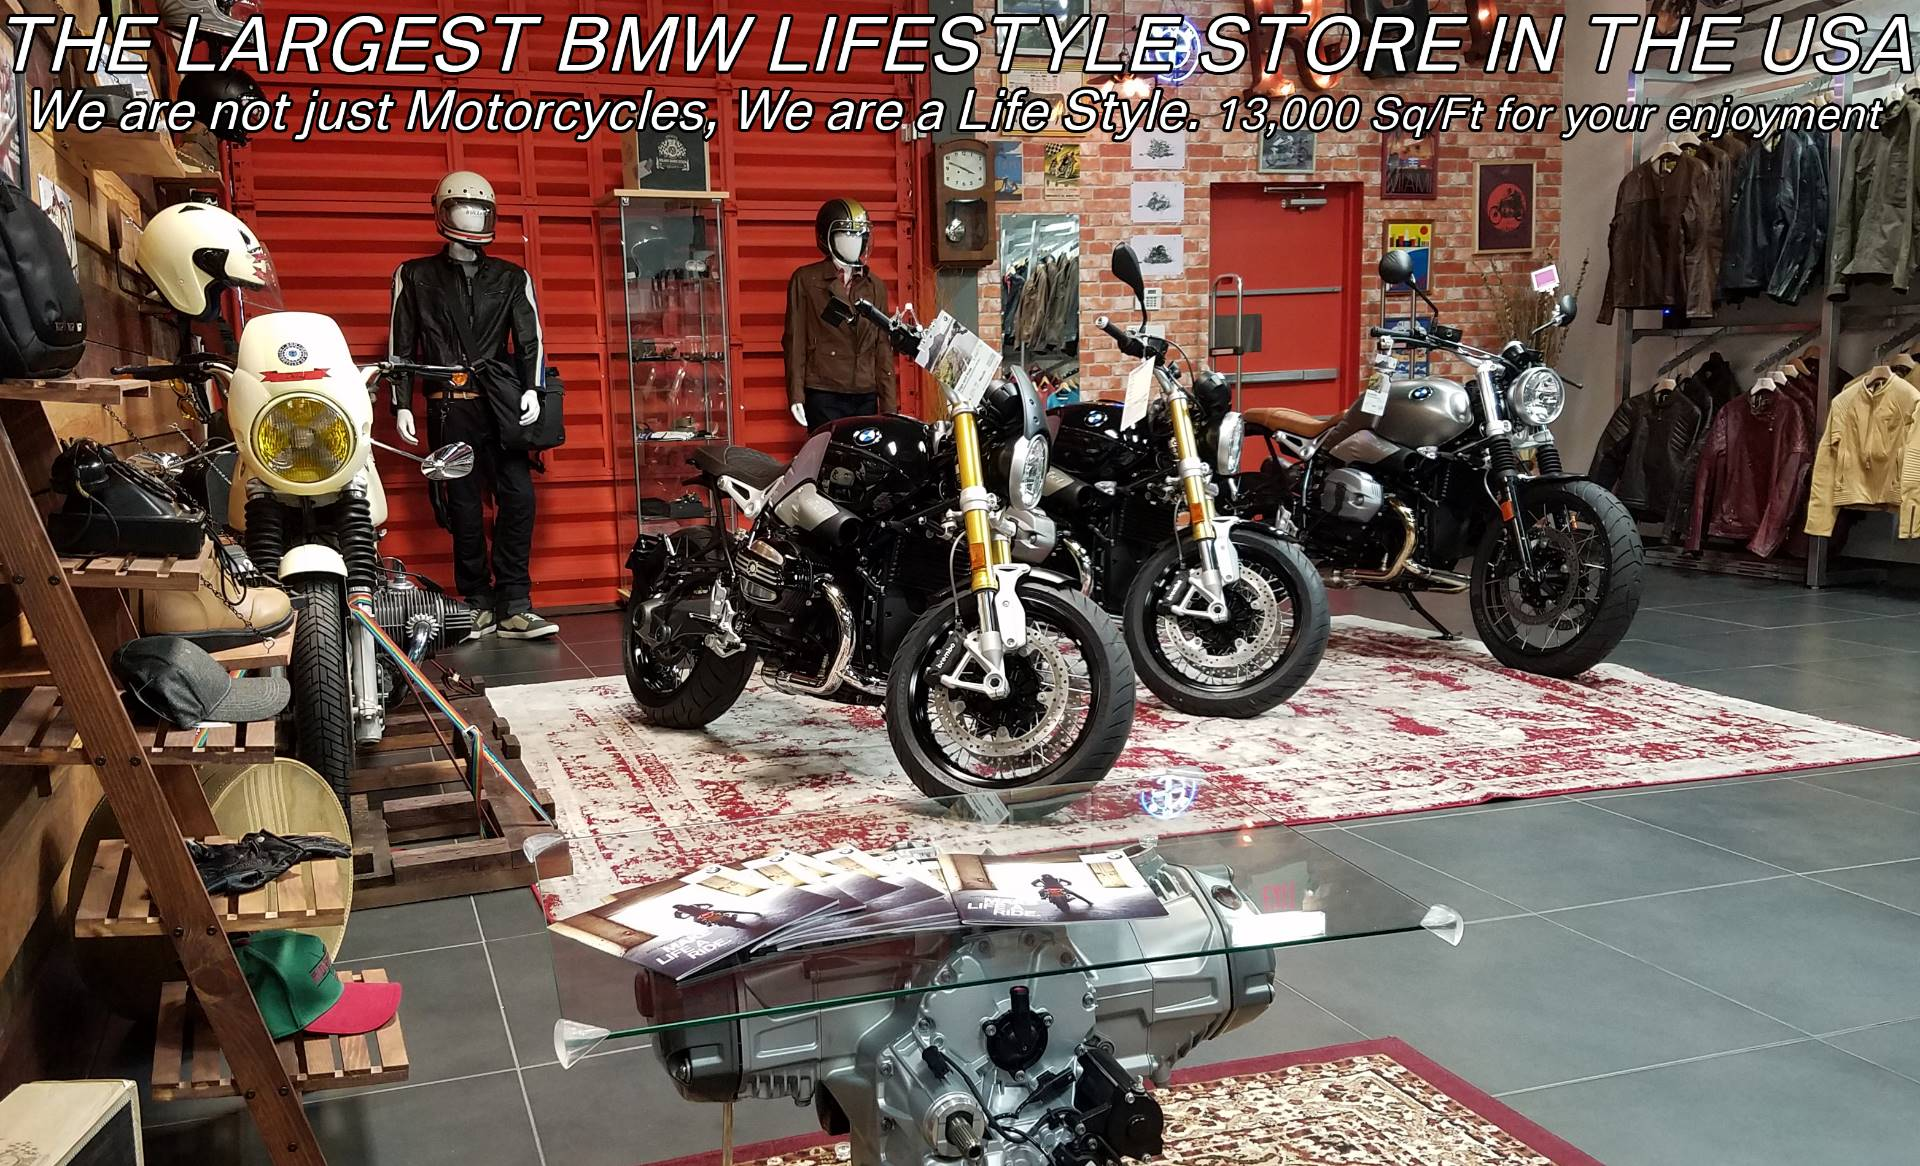 BMW Motorcycles of Miami, Motorcycles of Miami, Motorcycles Miami, New Motorcycles, Used Motorcycles, pre-owned. #BMWMotorcyclesOfMiami #MotorcyclesOfMiami - Photo 27